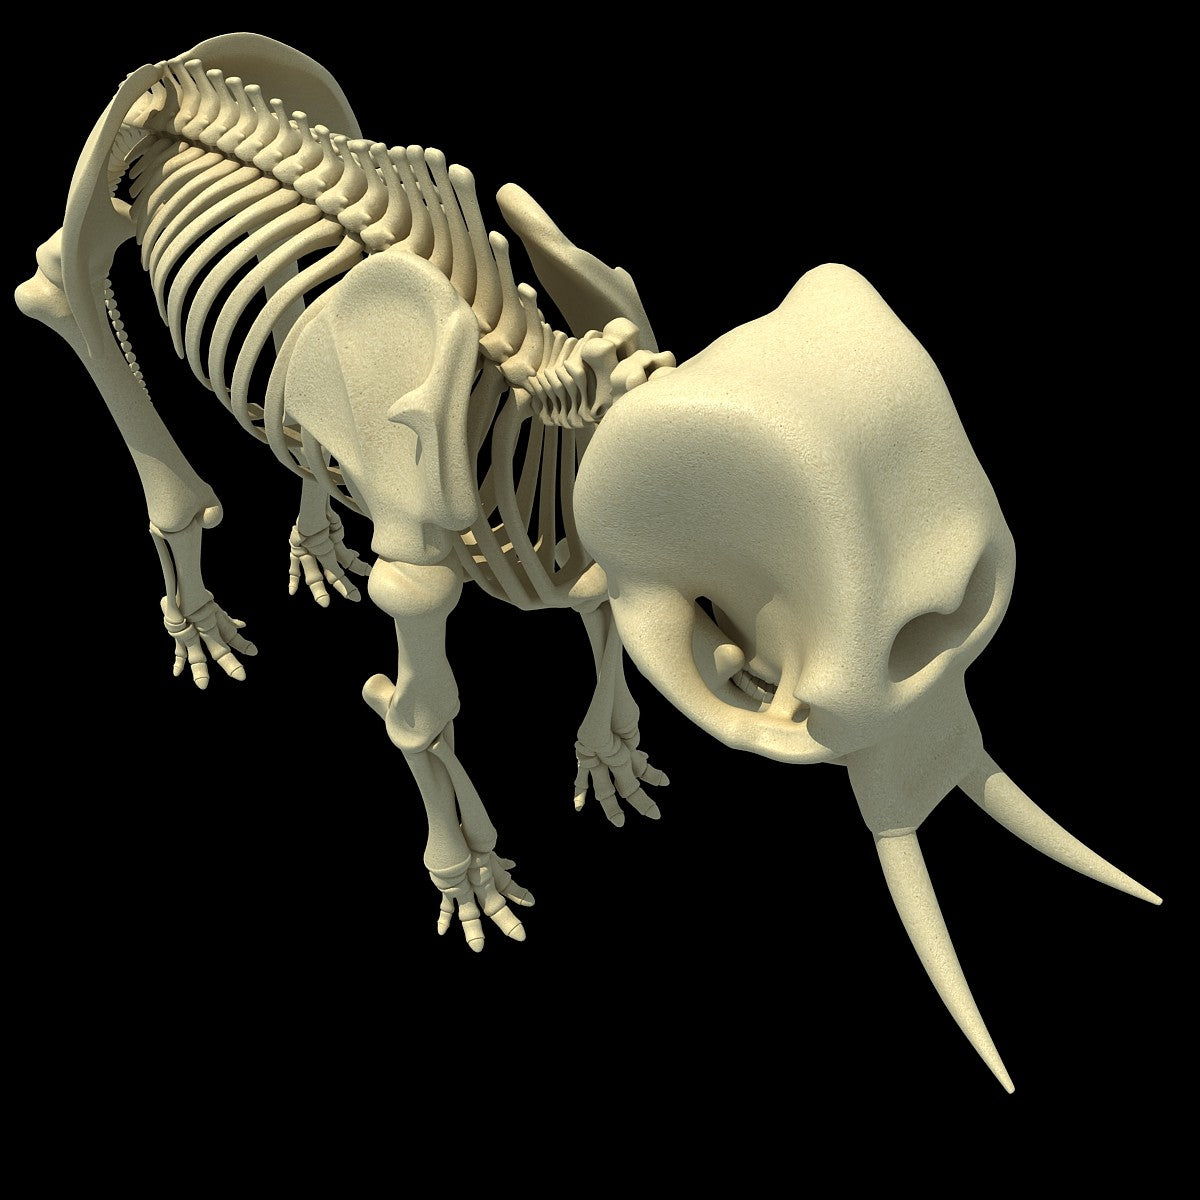 Elephant Skeleton 3D Model